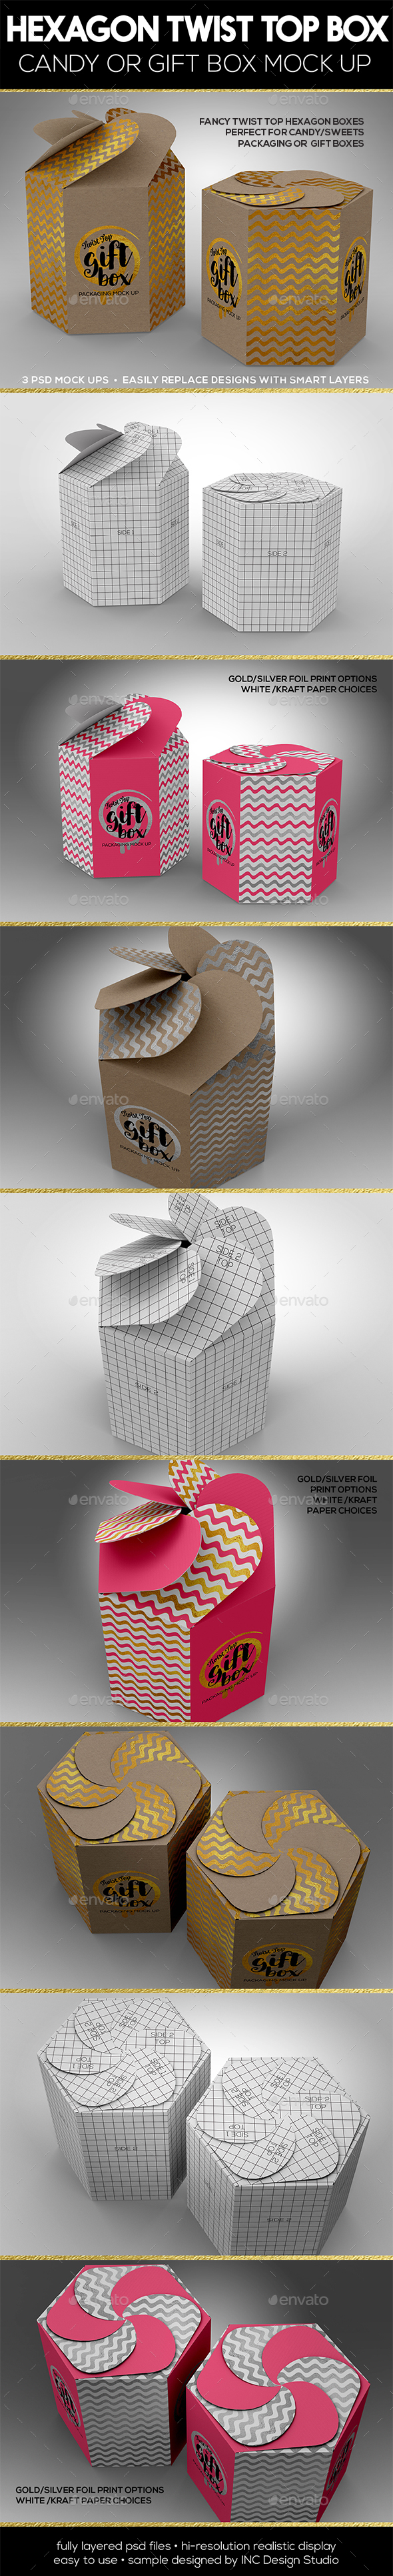 Download Hexagon Twist Top Candy Gift Box Packaging Mock Ups Gift Box Packaging Box Packaging Candy Gift Box